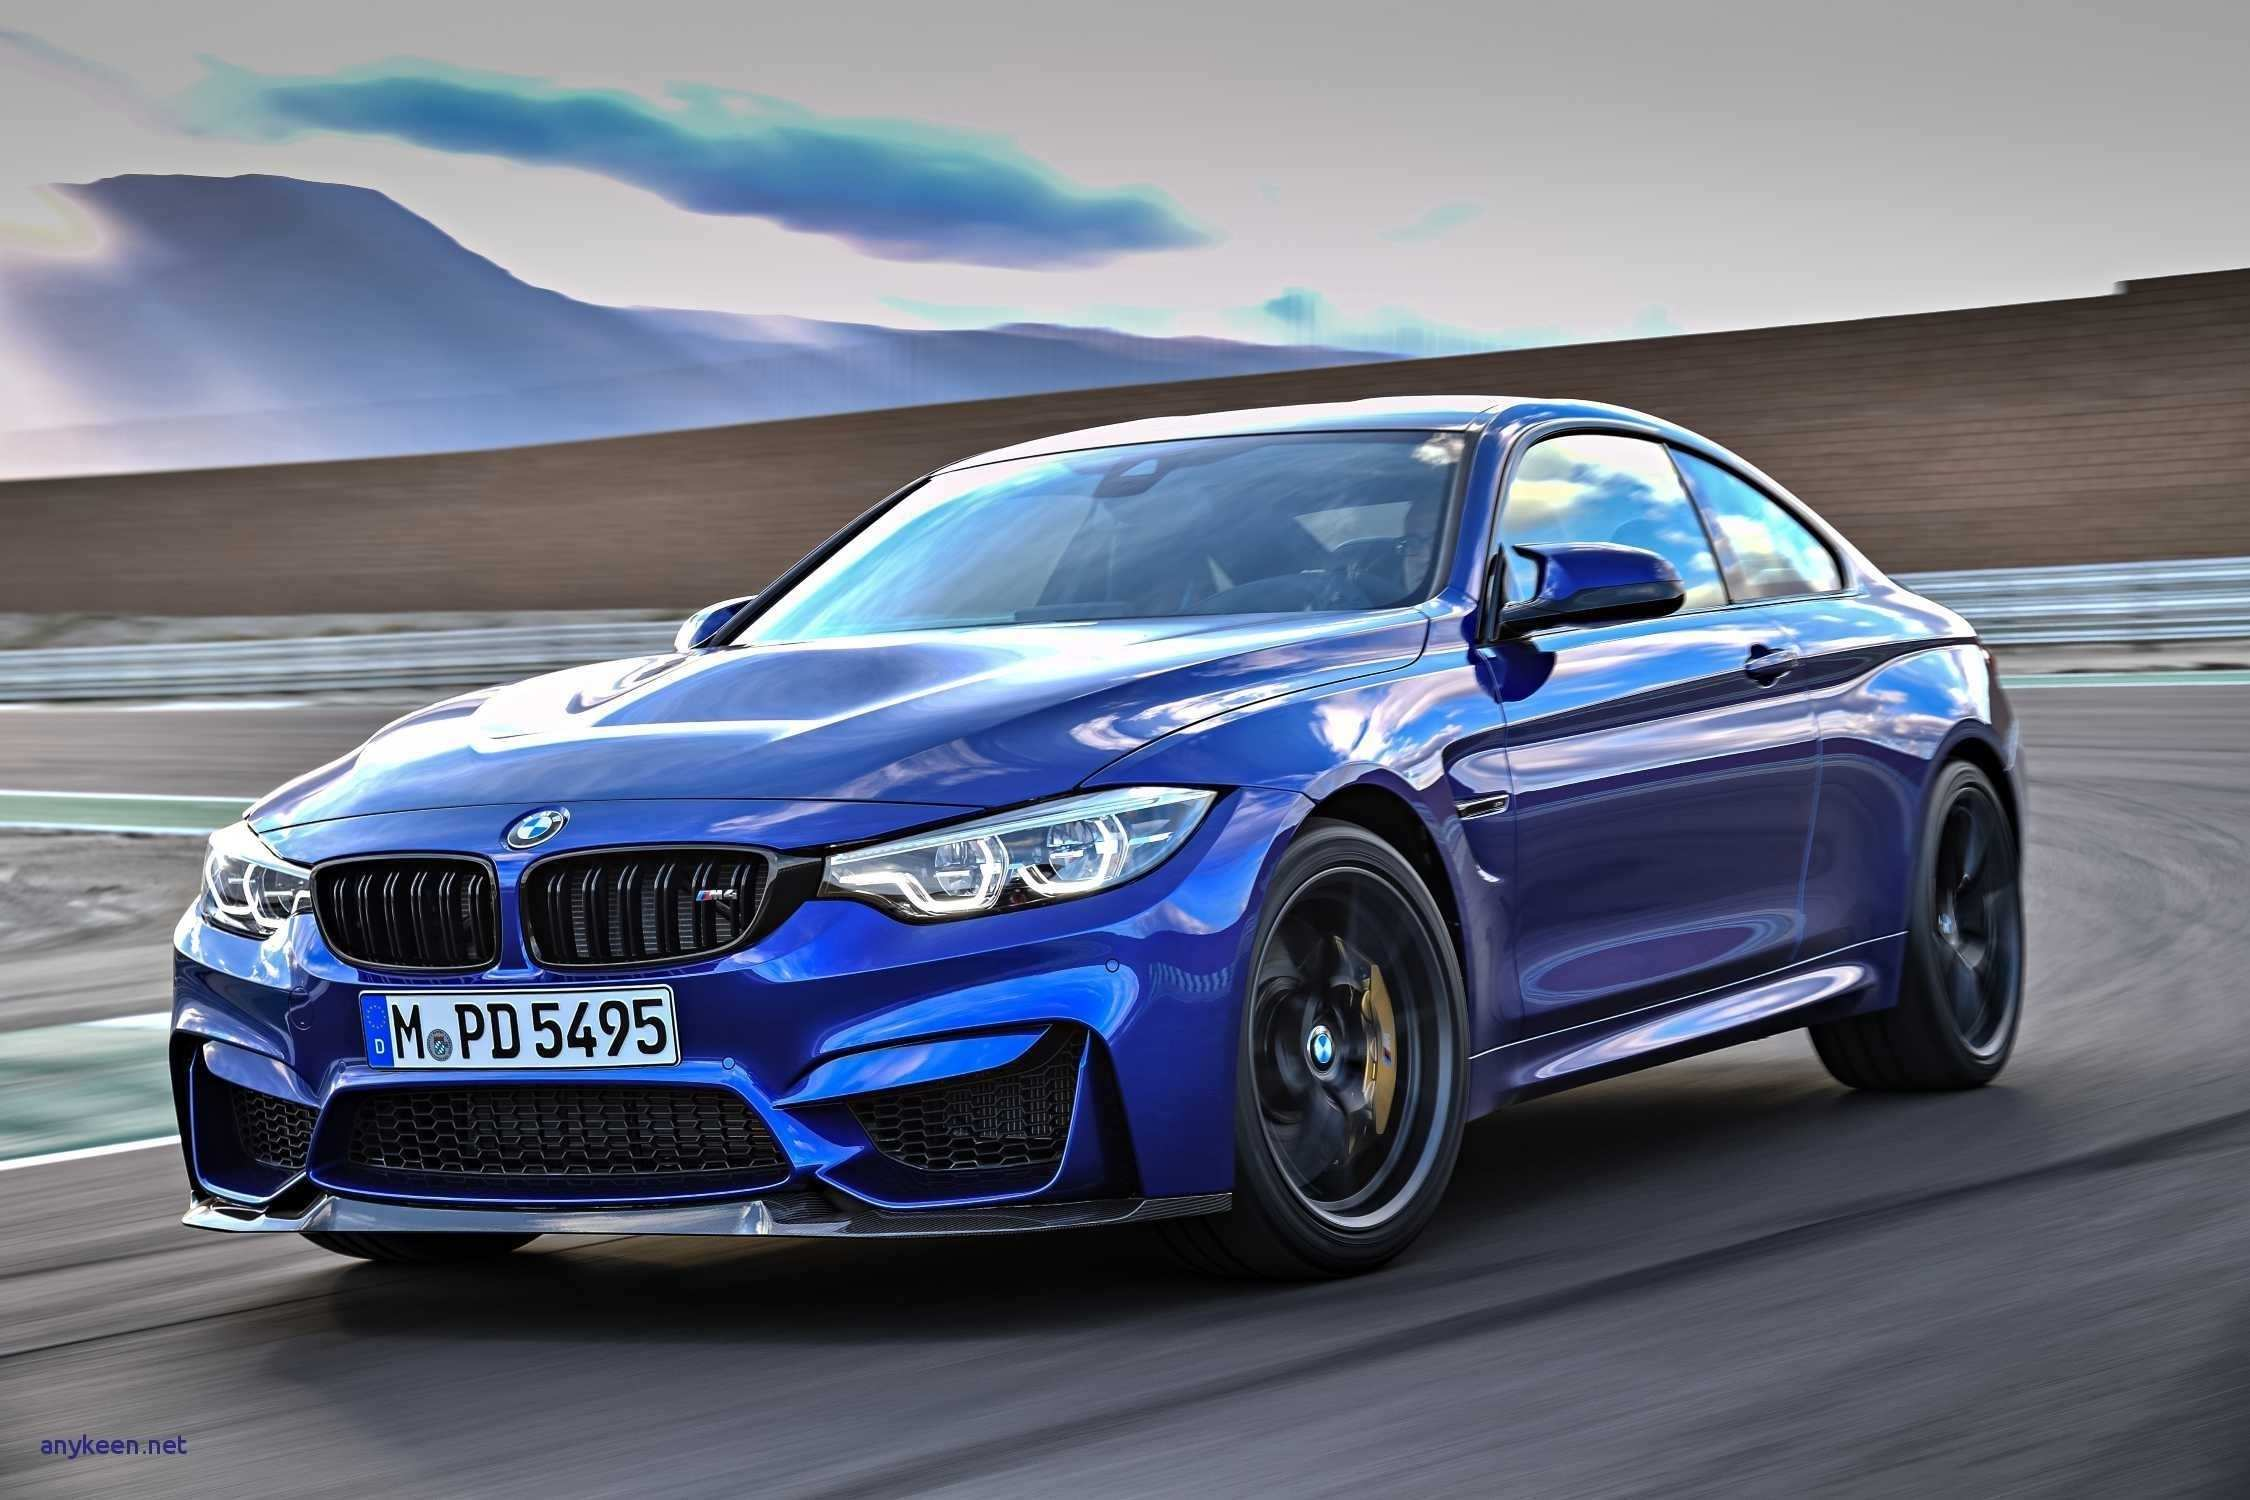 92 The 2019 BMW M4 Colors Overview